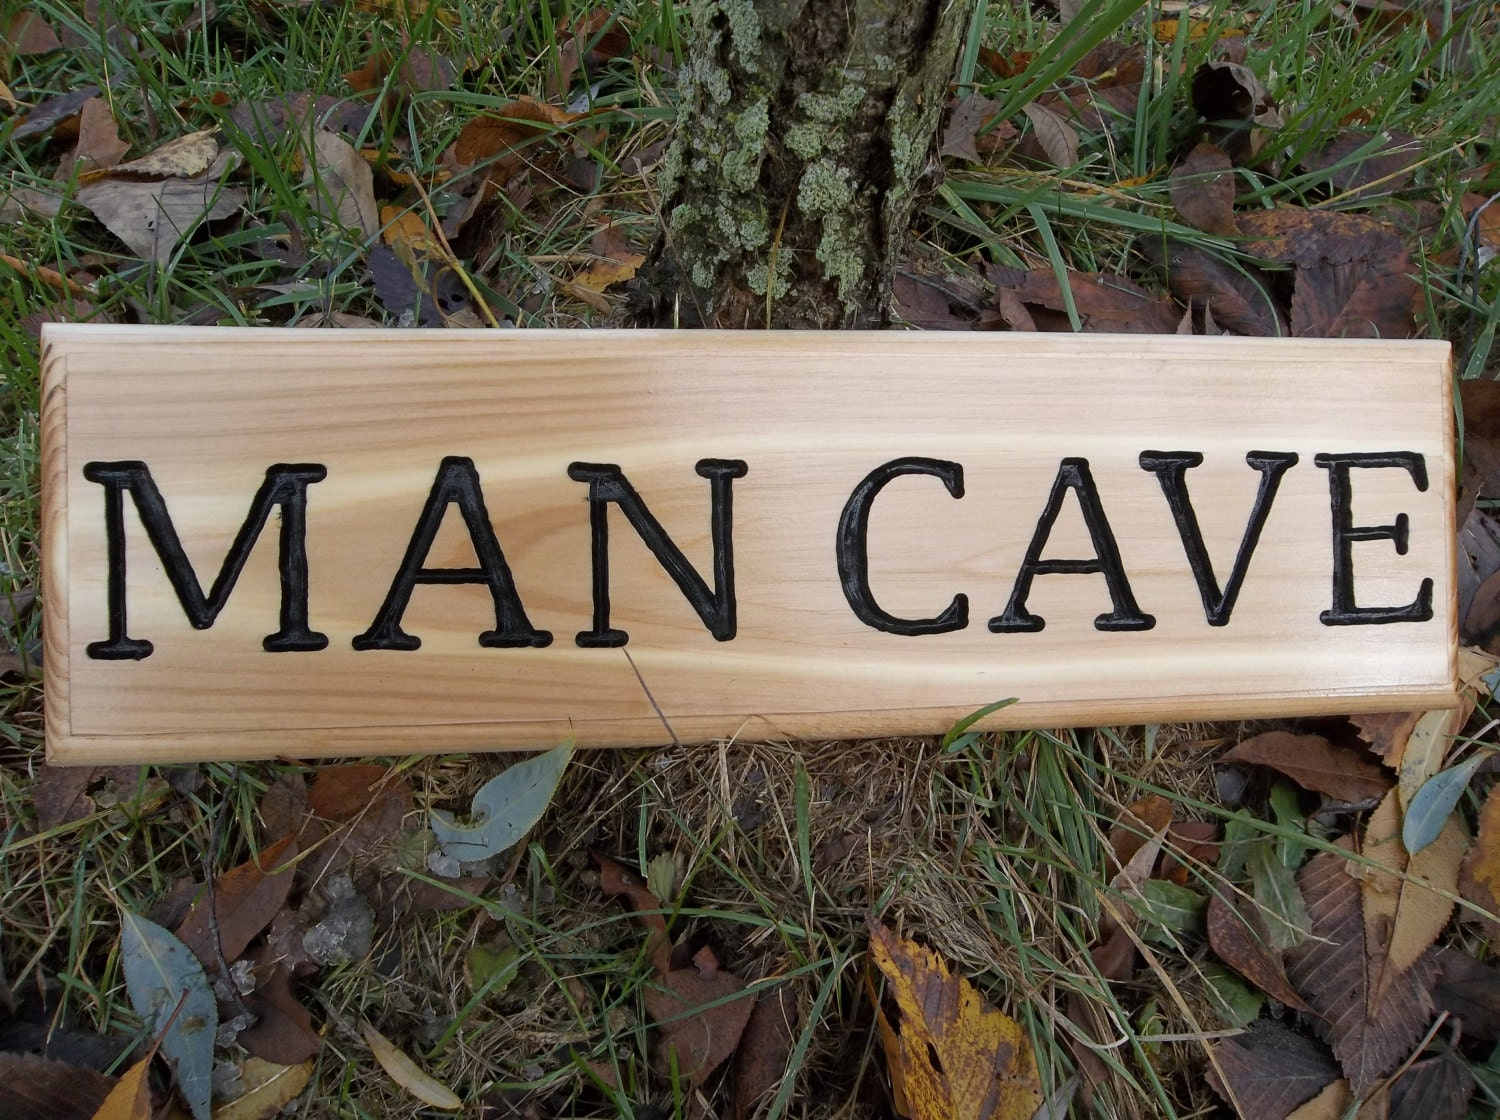 Man Cave Signs Wooden : Man cave sign hand carved wooden by